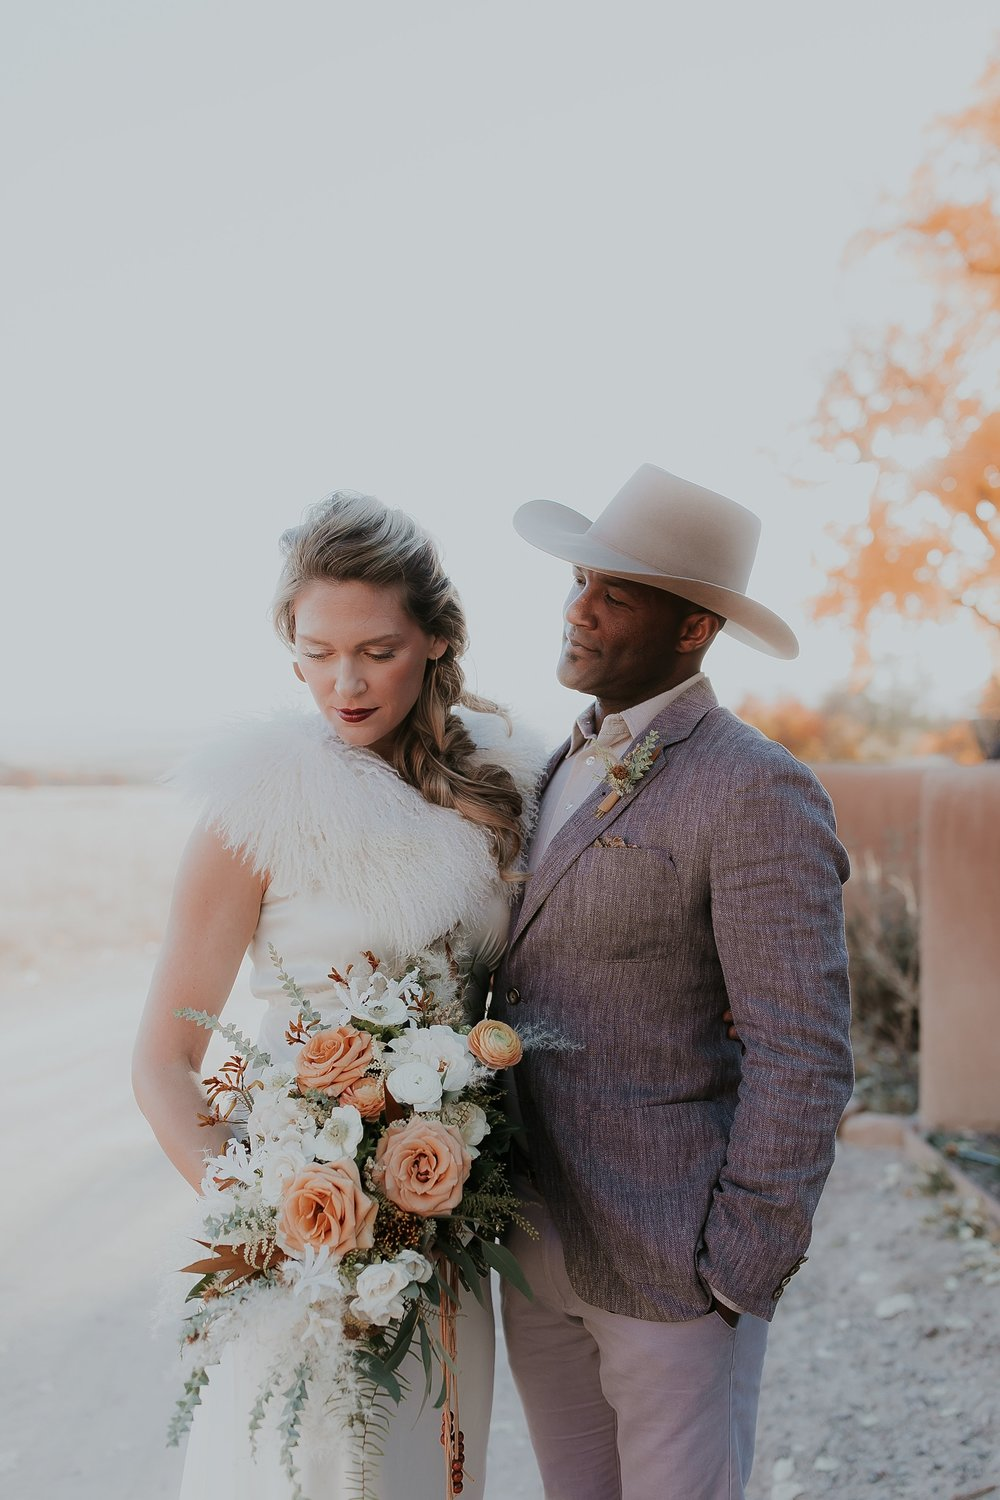 Alicia+lucia+photography+-+albuquerque+wedding+photographer+-+santa+fe+wedding+photography+-+new+mexico+wedding+photographer+-+new+mexico+ghost+ranch+wedding+-+styled+wedding+shoot_0048.jpg